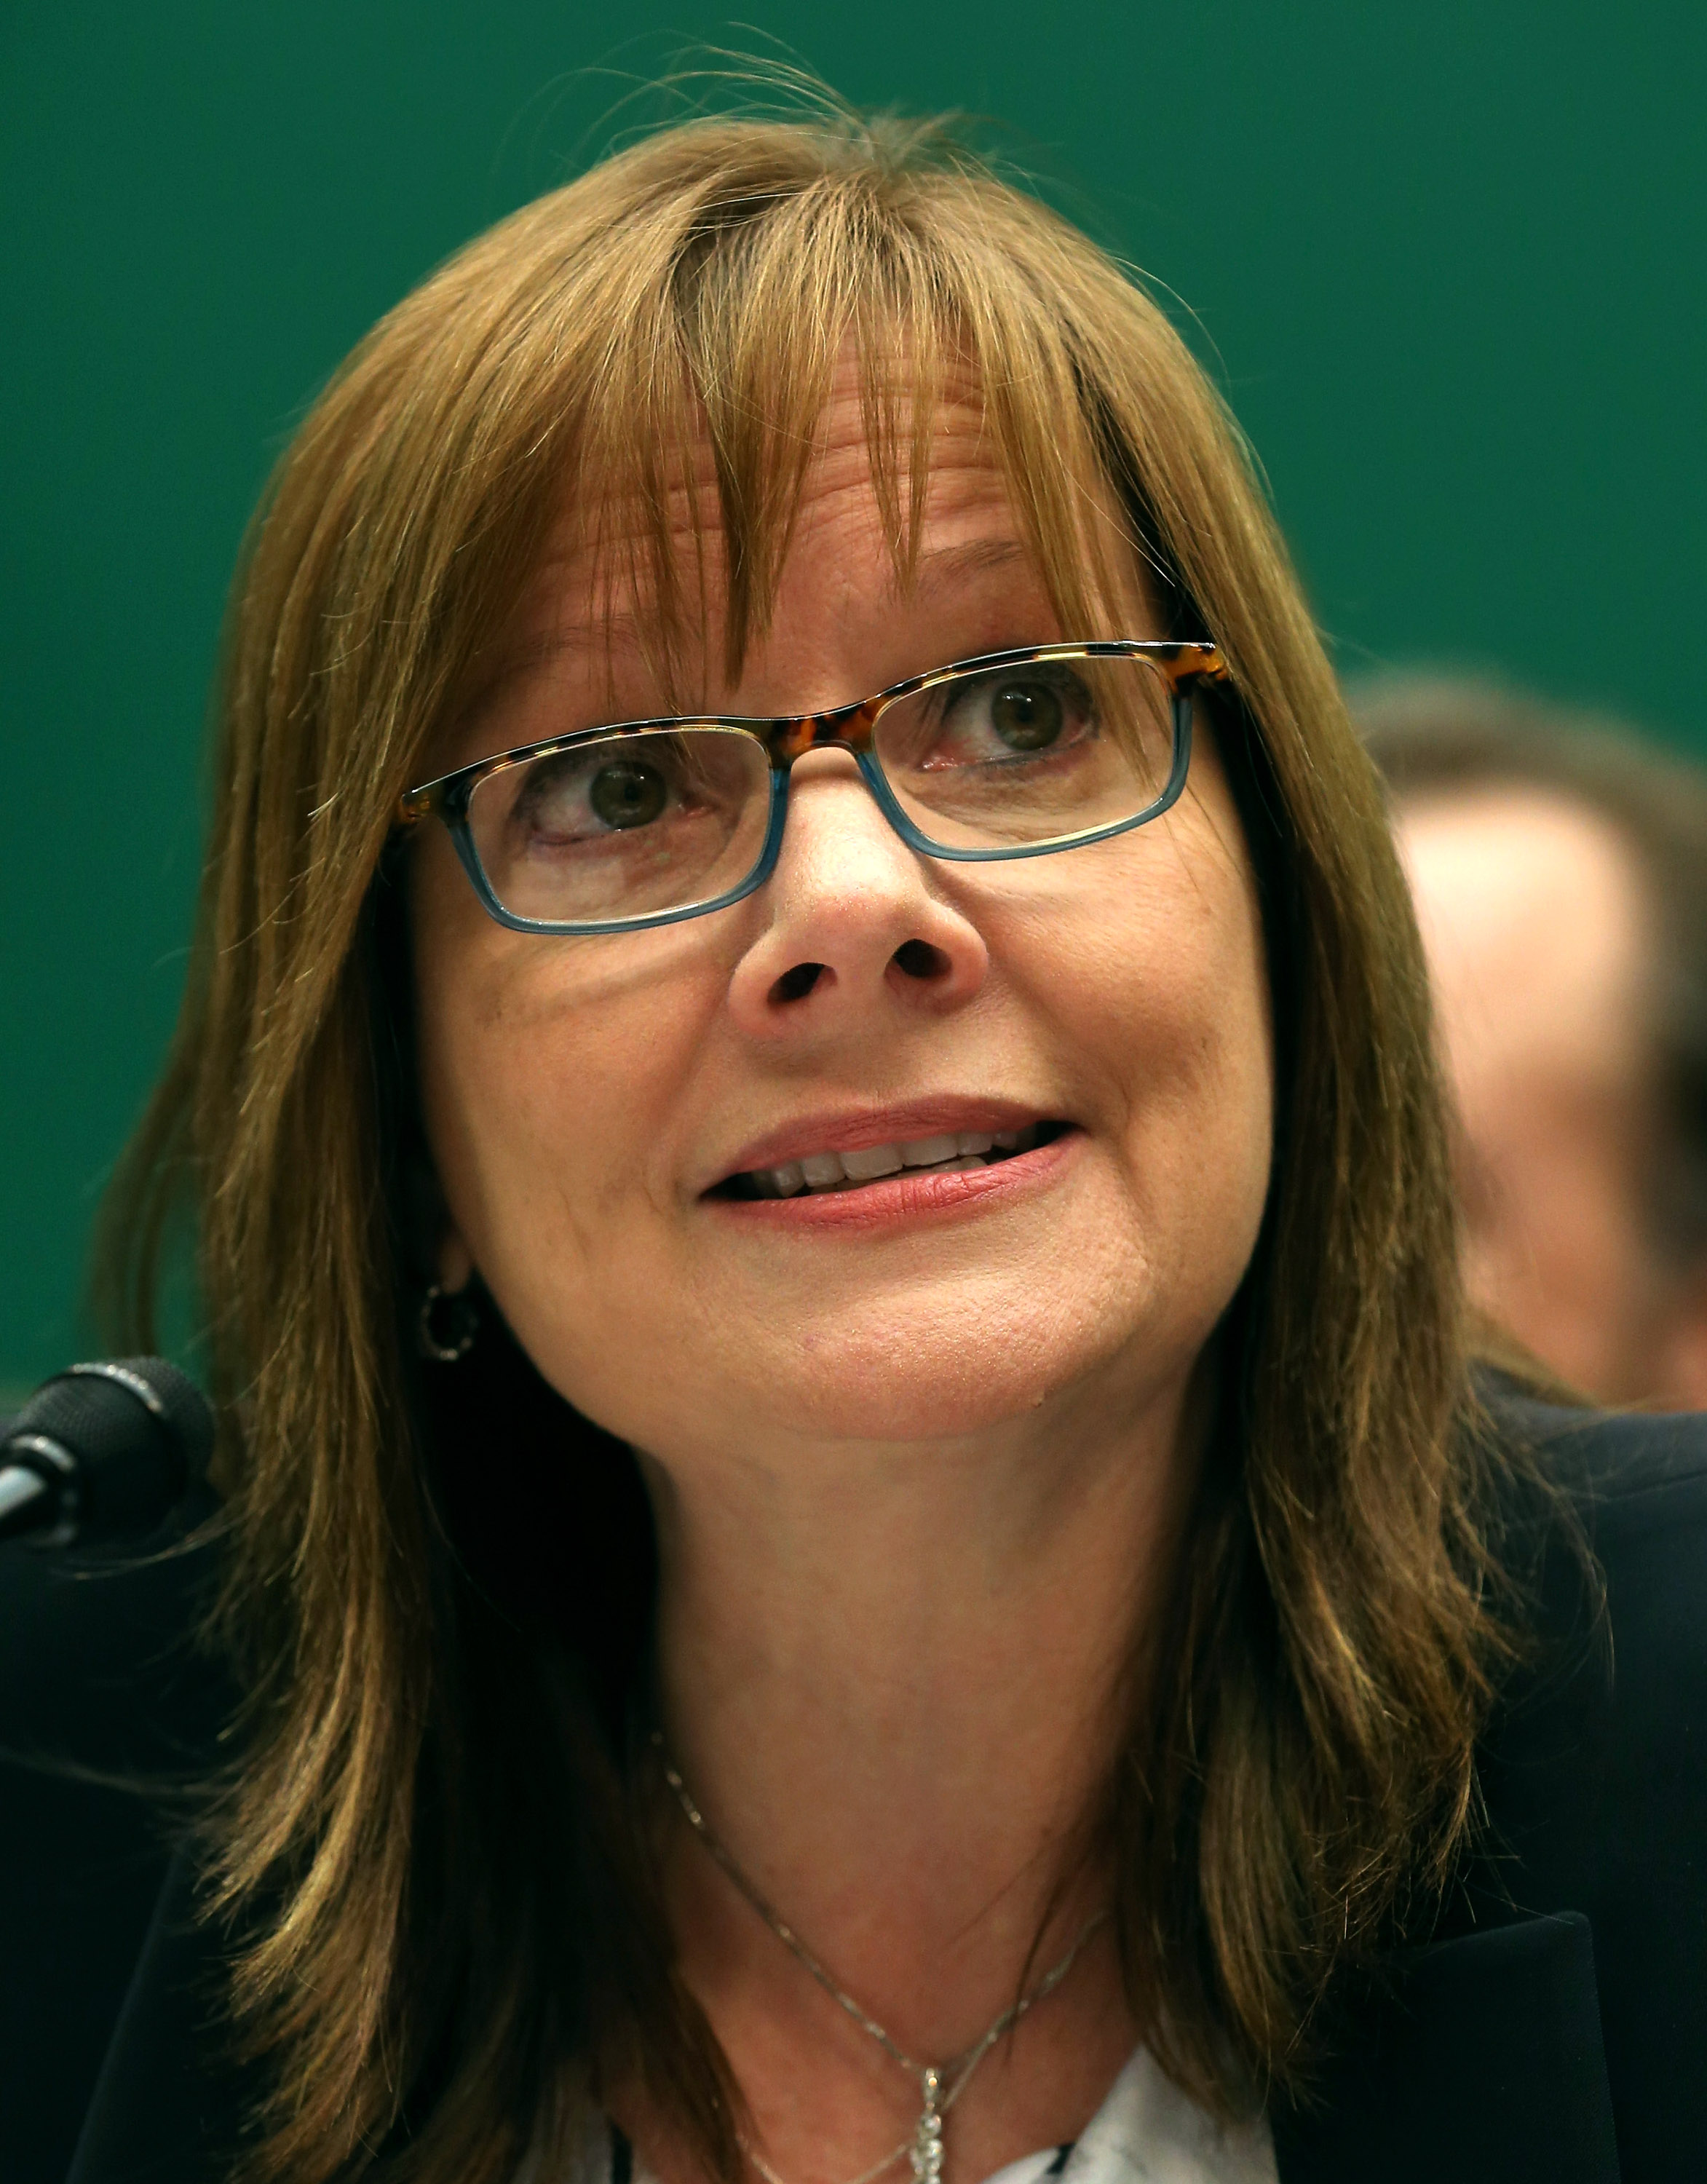 General Motors CEO Mary Barra testifies during a House Energy and Commerce Committee hearing on Capitol Hill on June 18, 2014 in Washington, DC.  (Mark Wilson--Getty Images)